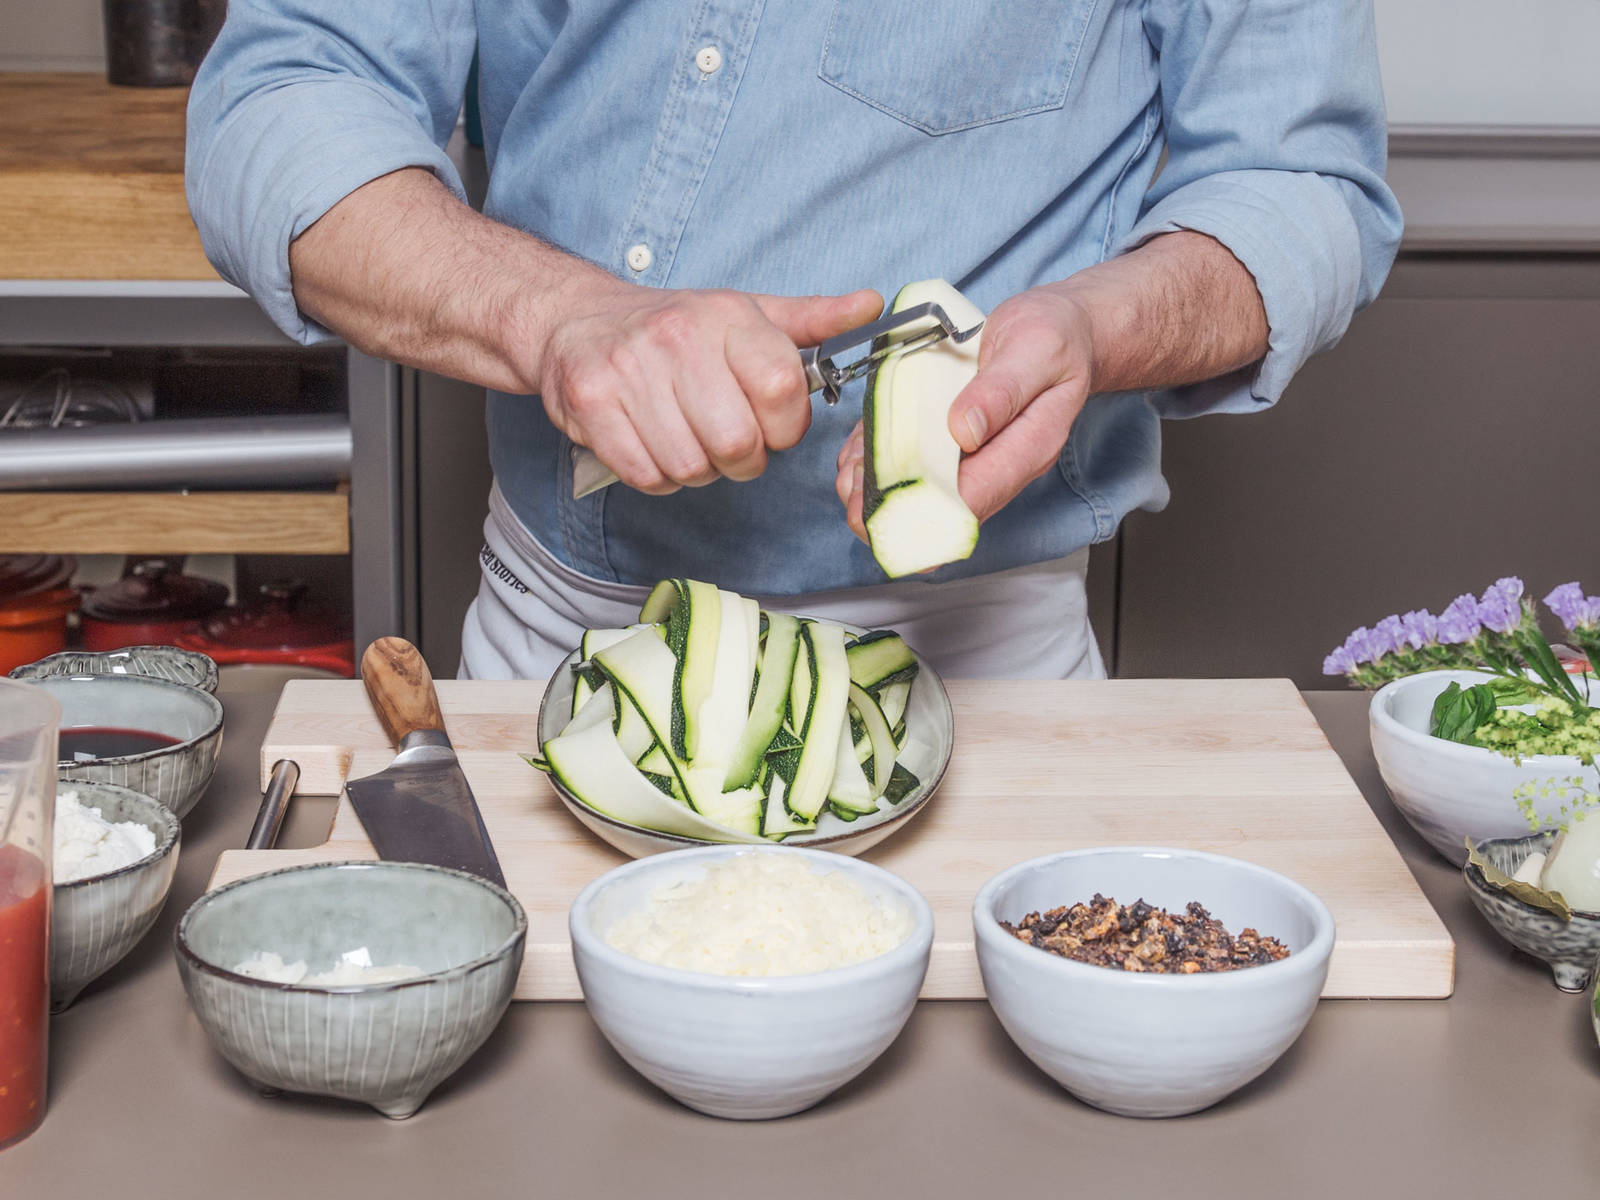 Peel and chop onion and garlic. Cut sundried tomatoes into small pieces. Thinly slice zucchini lengthwise with a vegetable peeler.